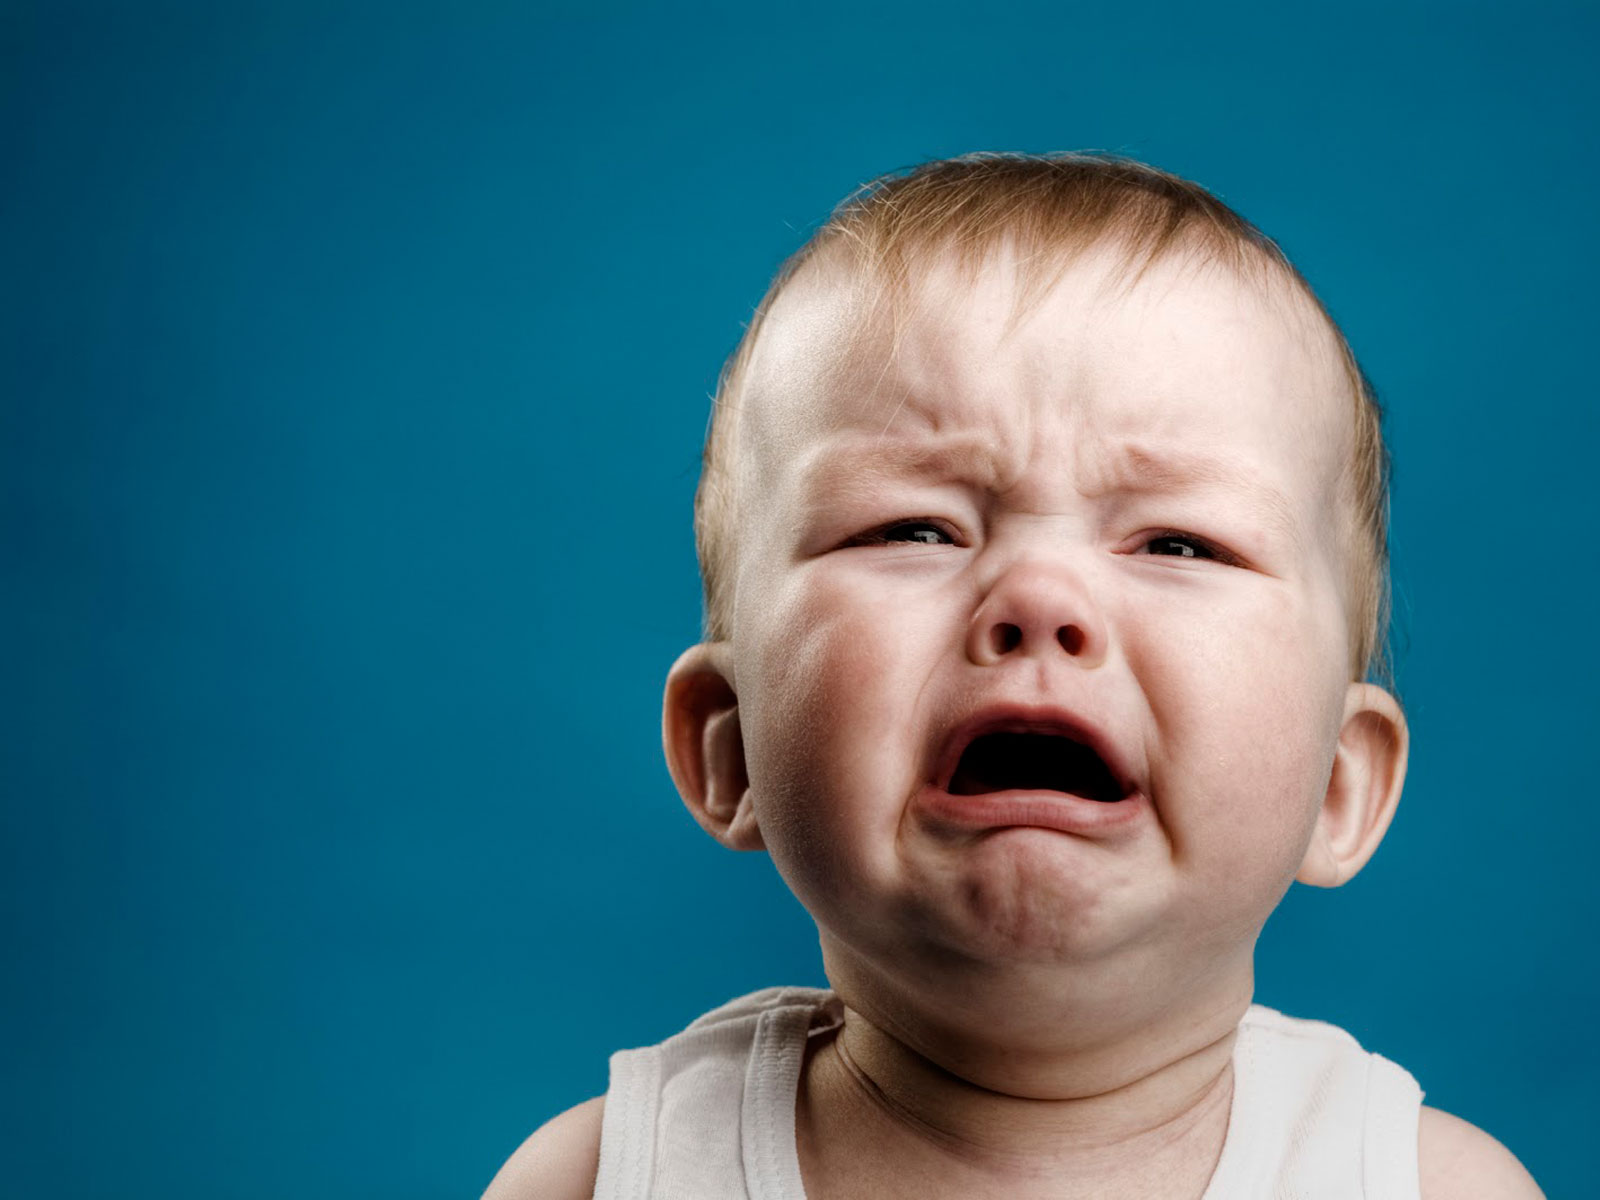 Funny Crying Baby